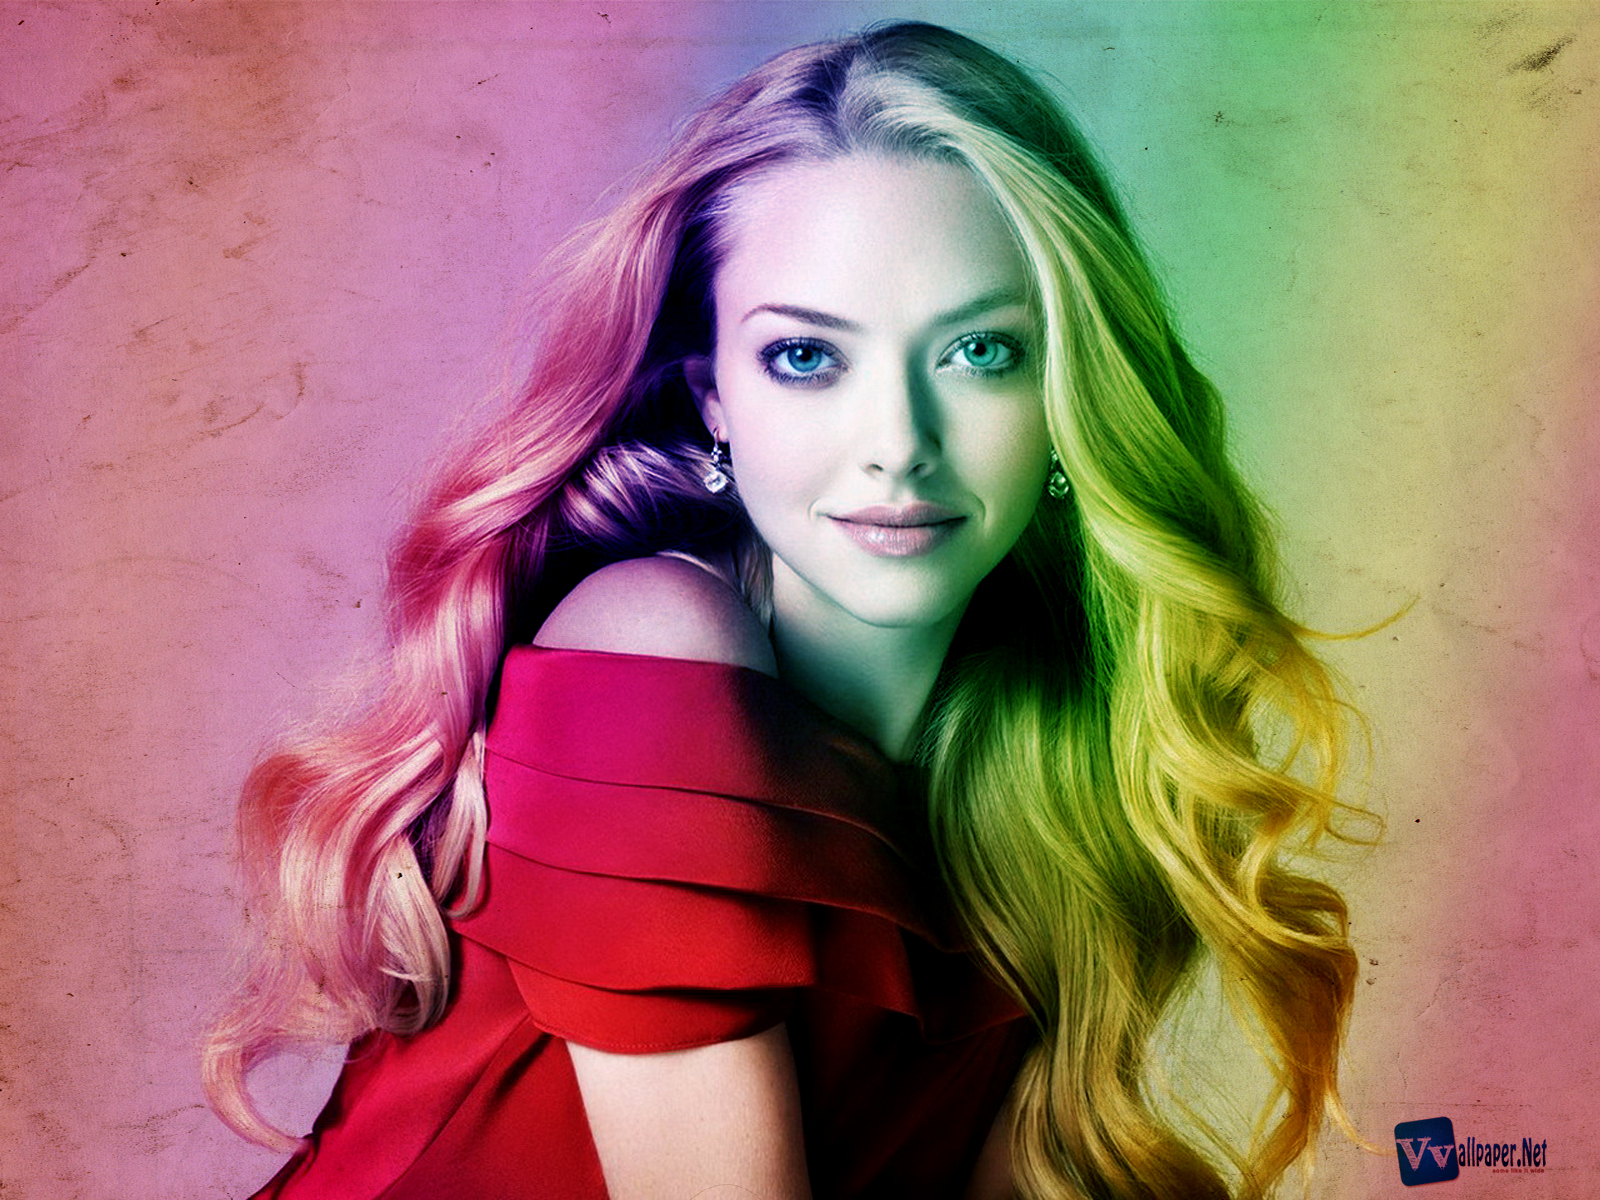 http://1.bp.blogspot.com/-czPXmwKm2SA/UBz2M50S1JI/AAAAAAAADcM/4wx1msBOChw/s1600/Amanda_Seyfrield_Cute_Smile_Colorful_HD_Wallpaper-by-Vvallpaper.Net.jpg